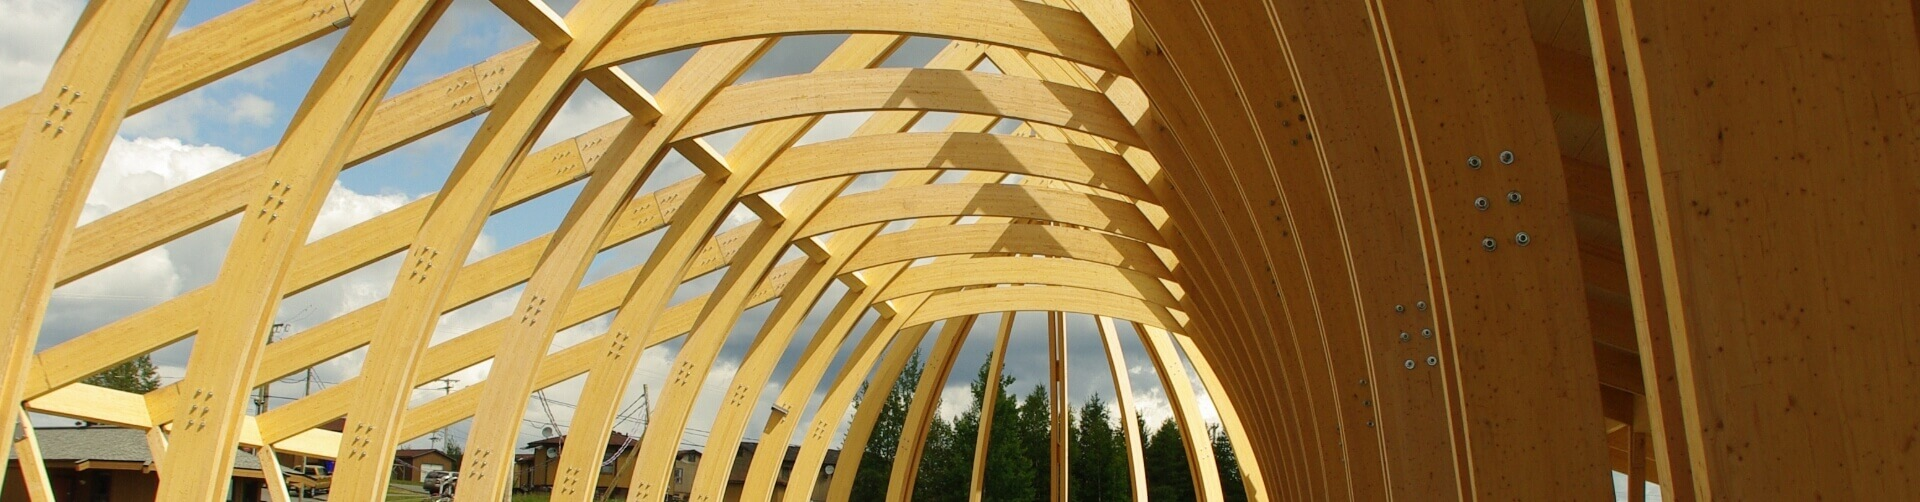 GLUED-LAMINATED ENGINEERED WOOD (GLULAM)